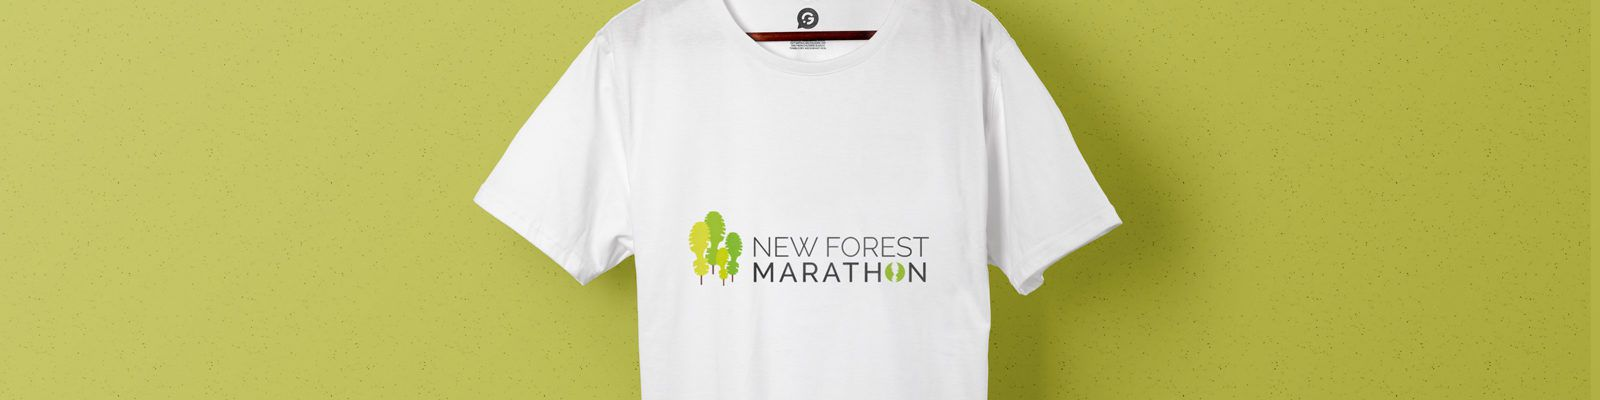 Printed Running Shirts for the New Forest Marathon with express delivery - Header Image